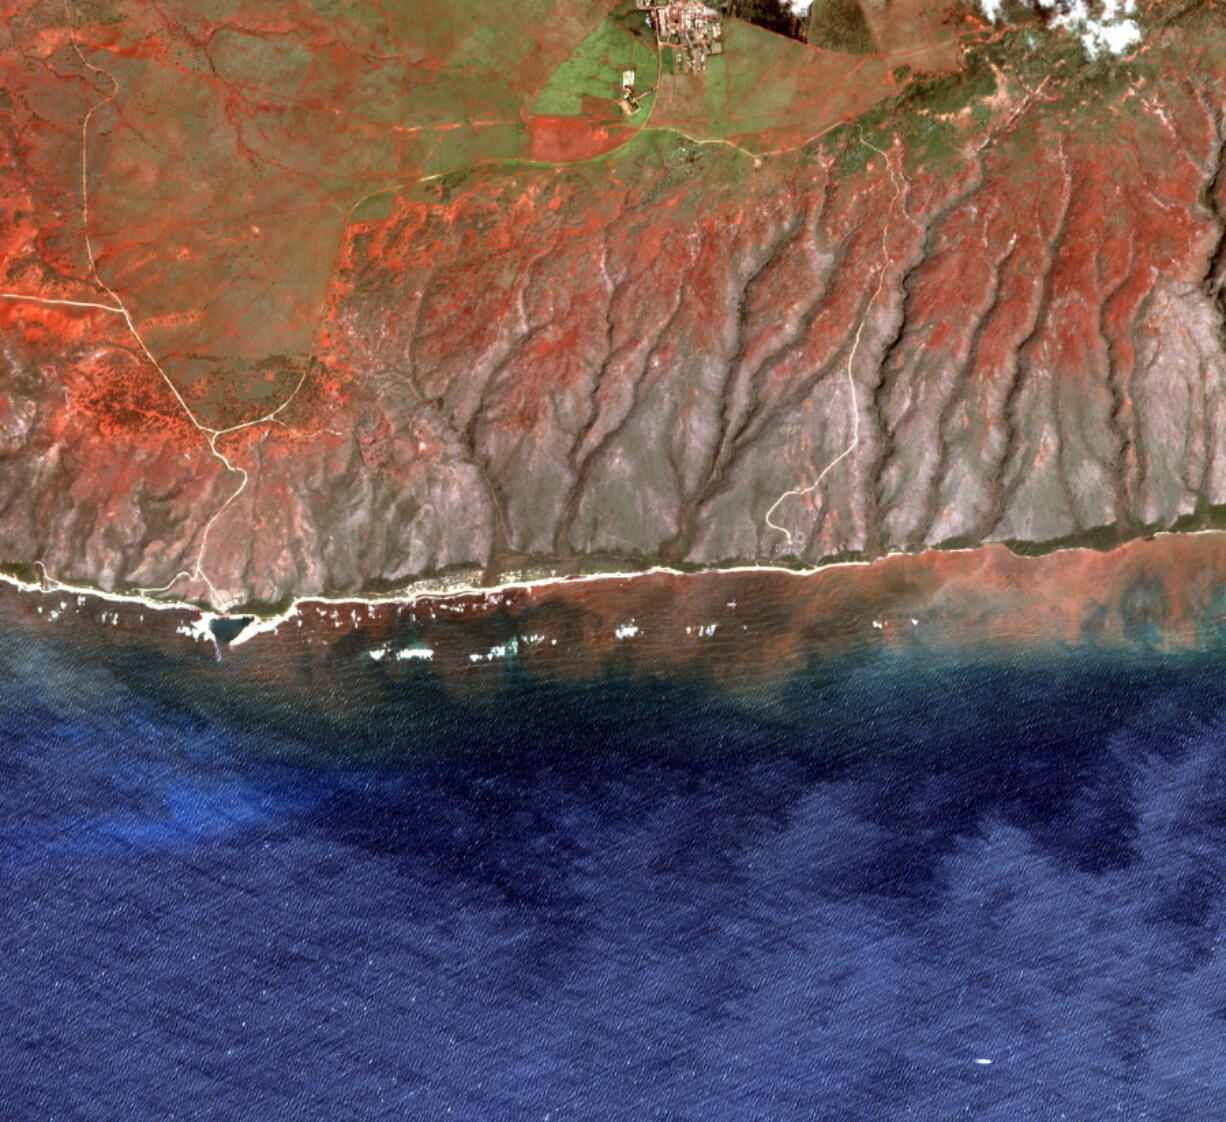 In this 2020 satellite image provided by the Arizona State University's Center for Global Discovery and Conservation Science, Allen Coral Atlas, runoff from the island of Molokai in Hawaii flows into the ocean. Recent flooding in Hawaii caused widespread and obvious damage. But extreme regional rain events that are predicted to become more common with global warming do not only wreak havoc on land, the runoff from these increasingly severe storms is also threatening Hawaii's coral reefs.